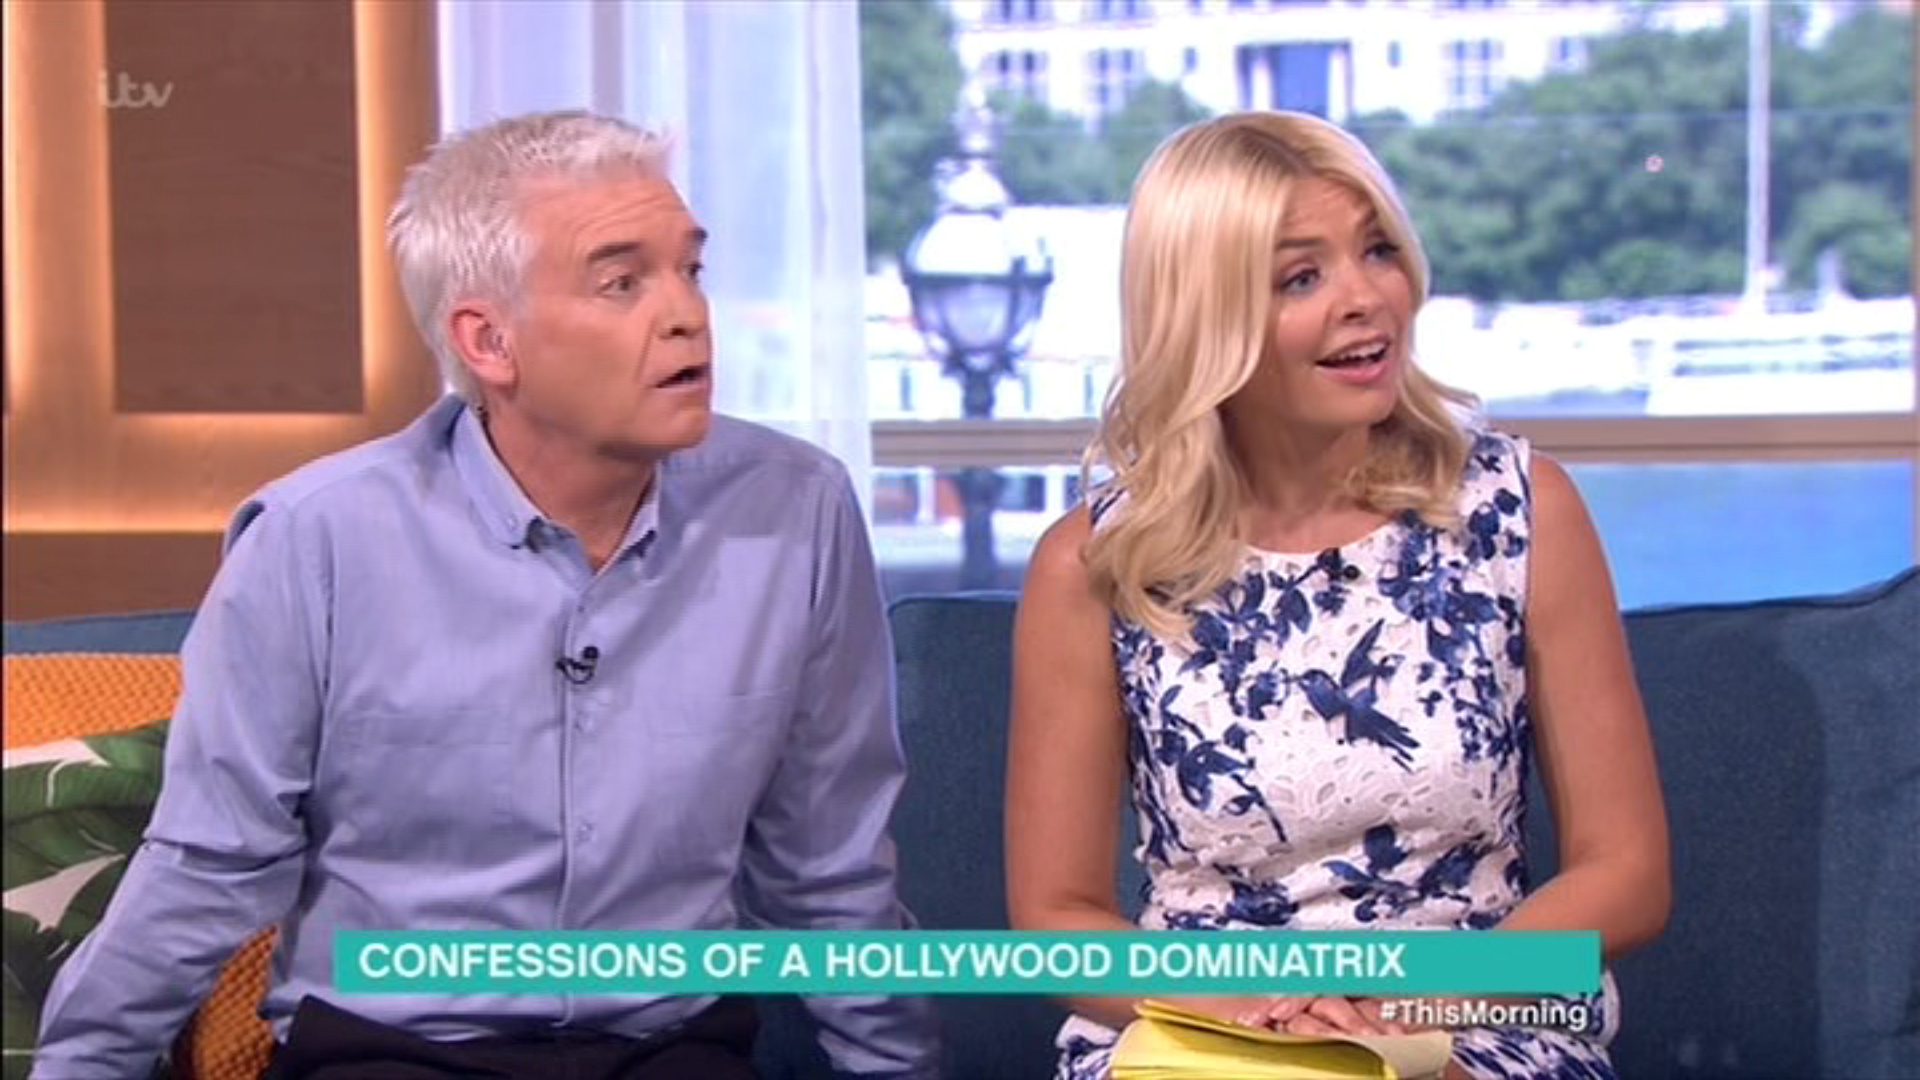 This Morning's Philip Schofield left shocked after Hollywood dominatrix reveals A-listers secrets